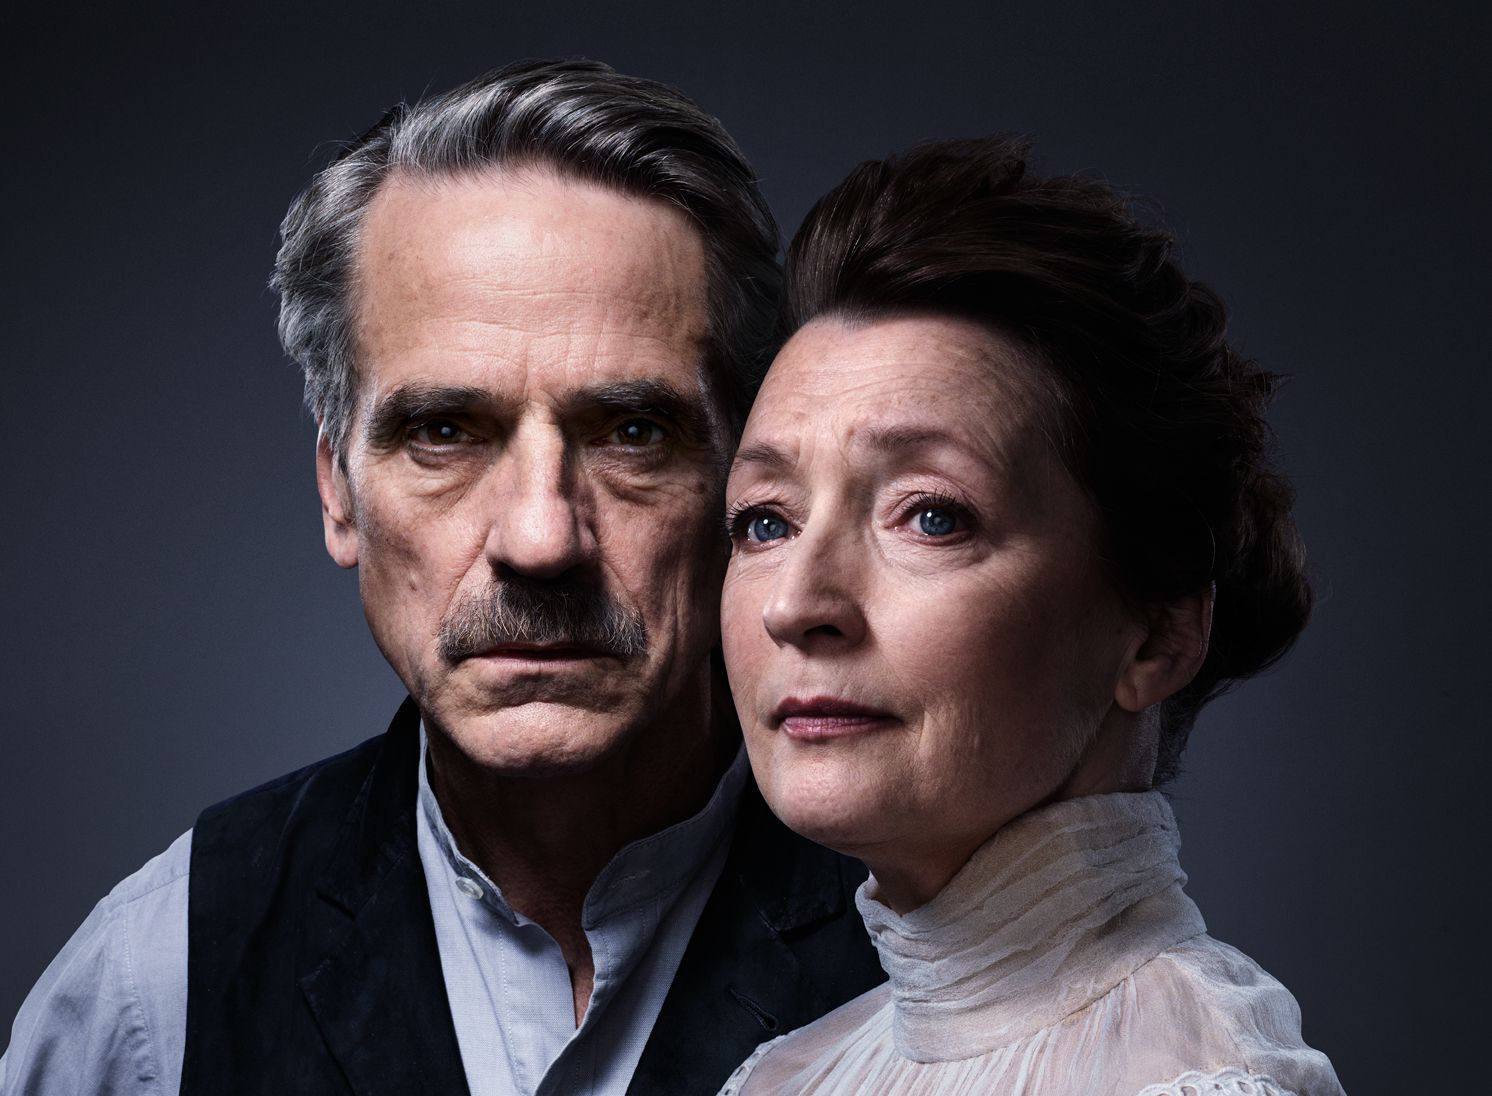 Long Days Journey Into Night Press Image